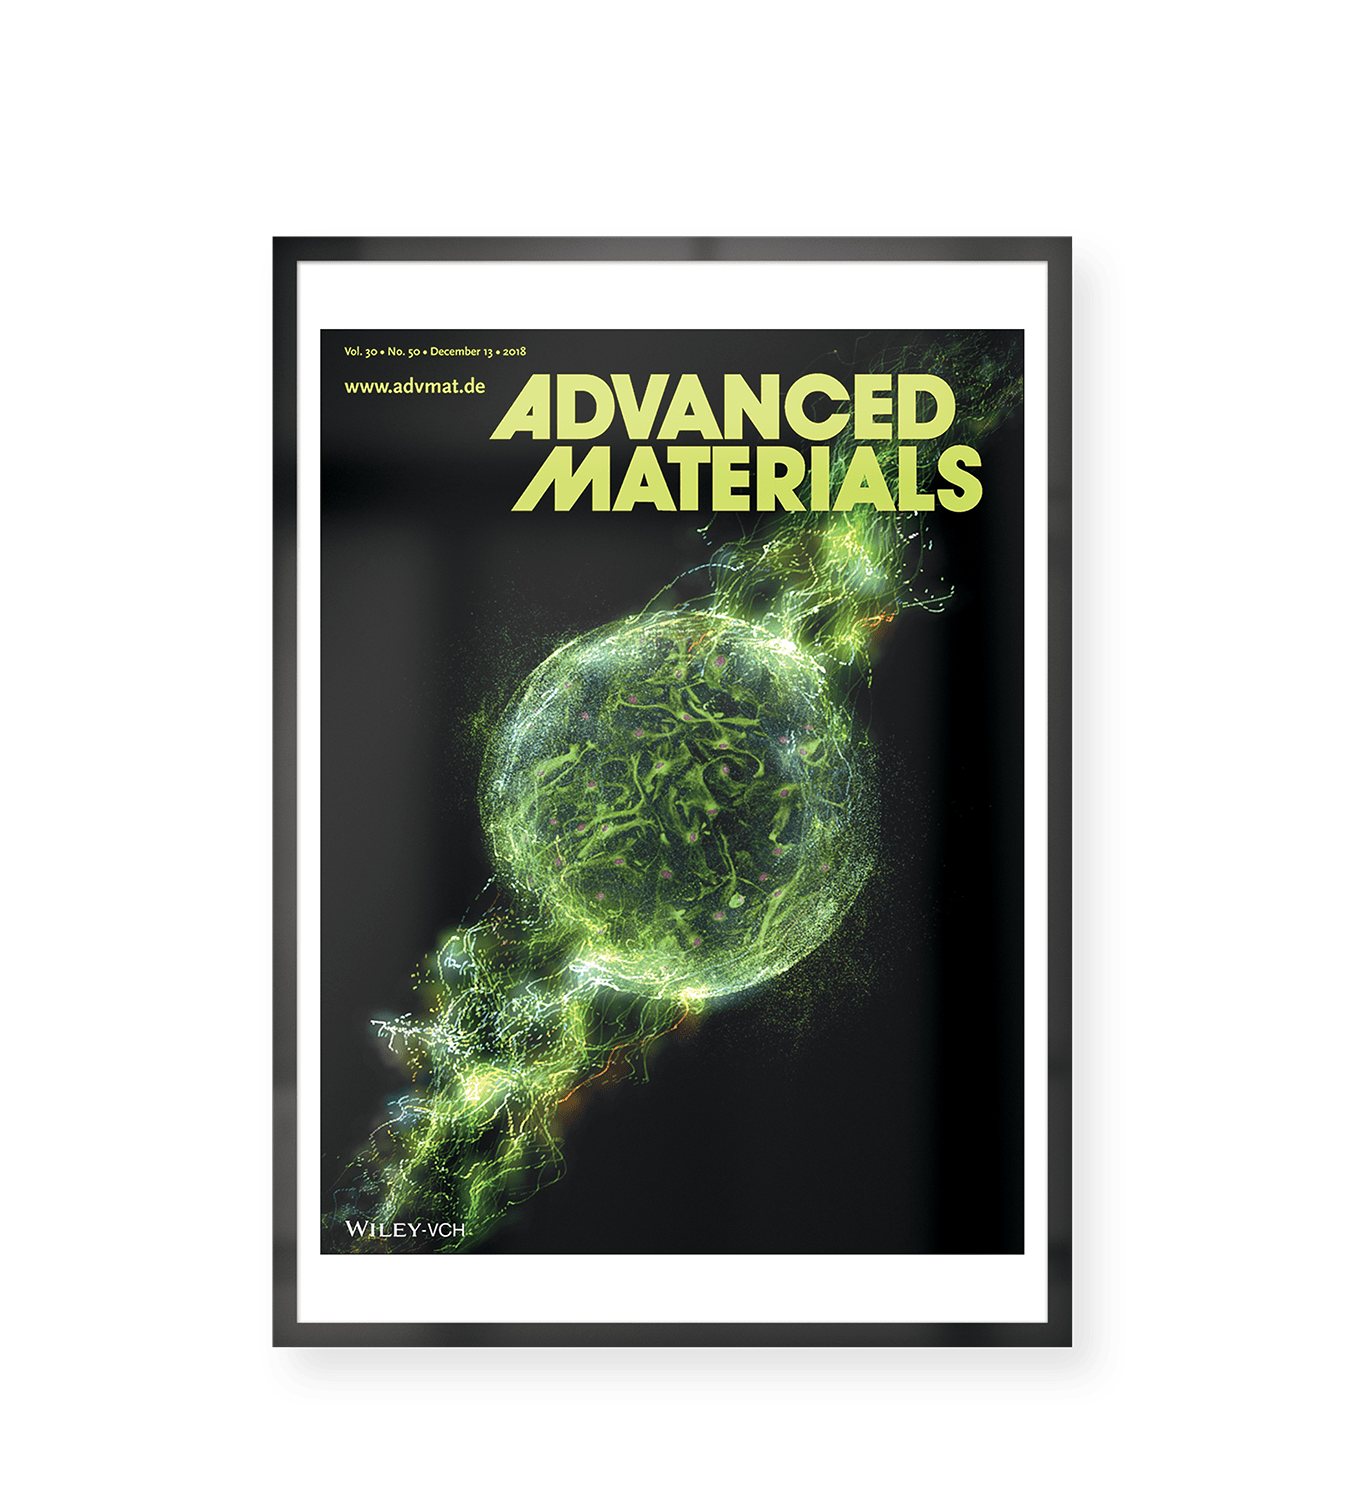 Front Cover Image of Advanced Materials representing the research of Dr Richard Williams et al: